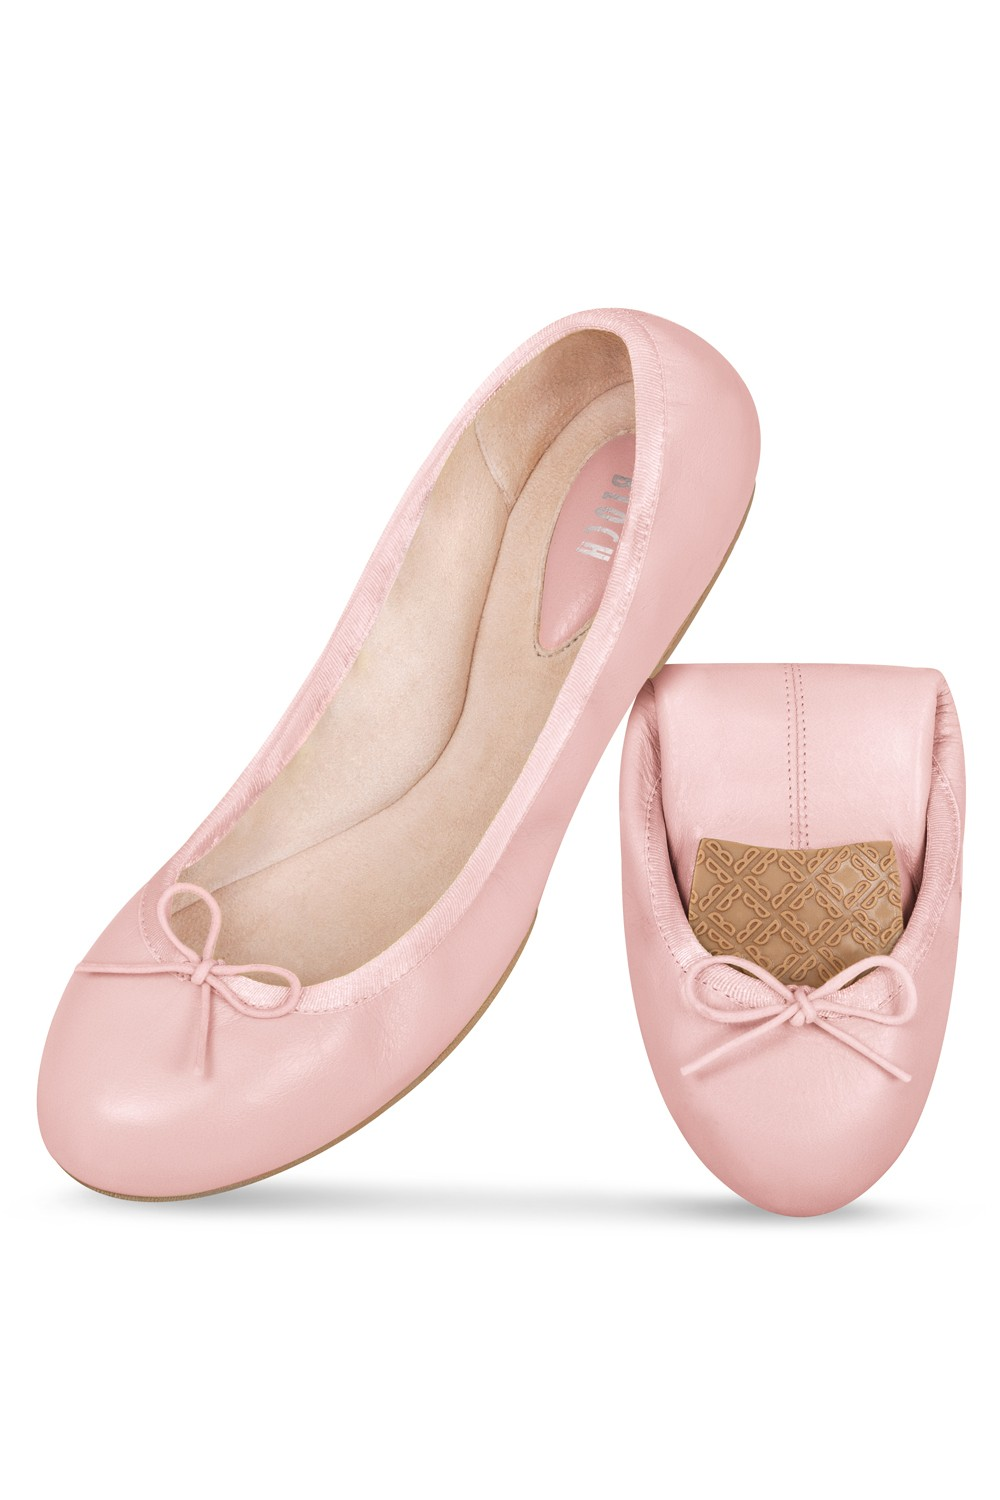 Amelie Fold Ballet Flat Shoes Womens Fashion Shoes